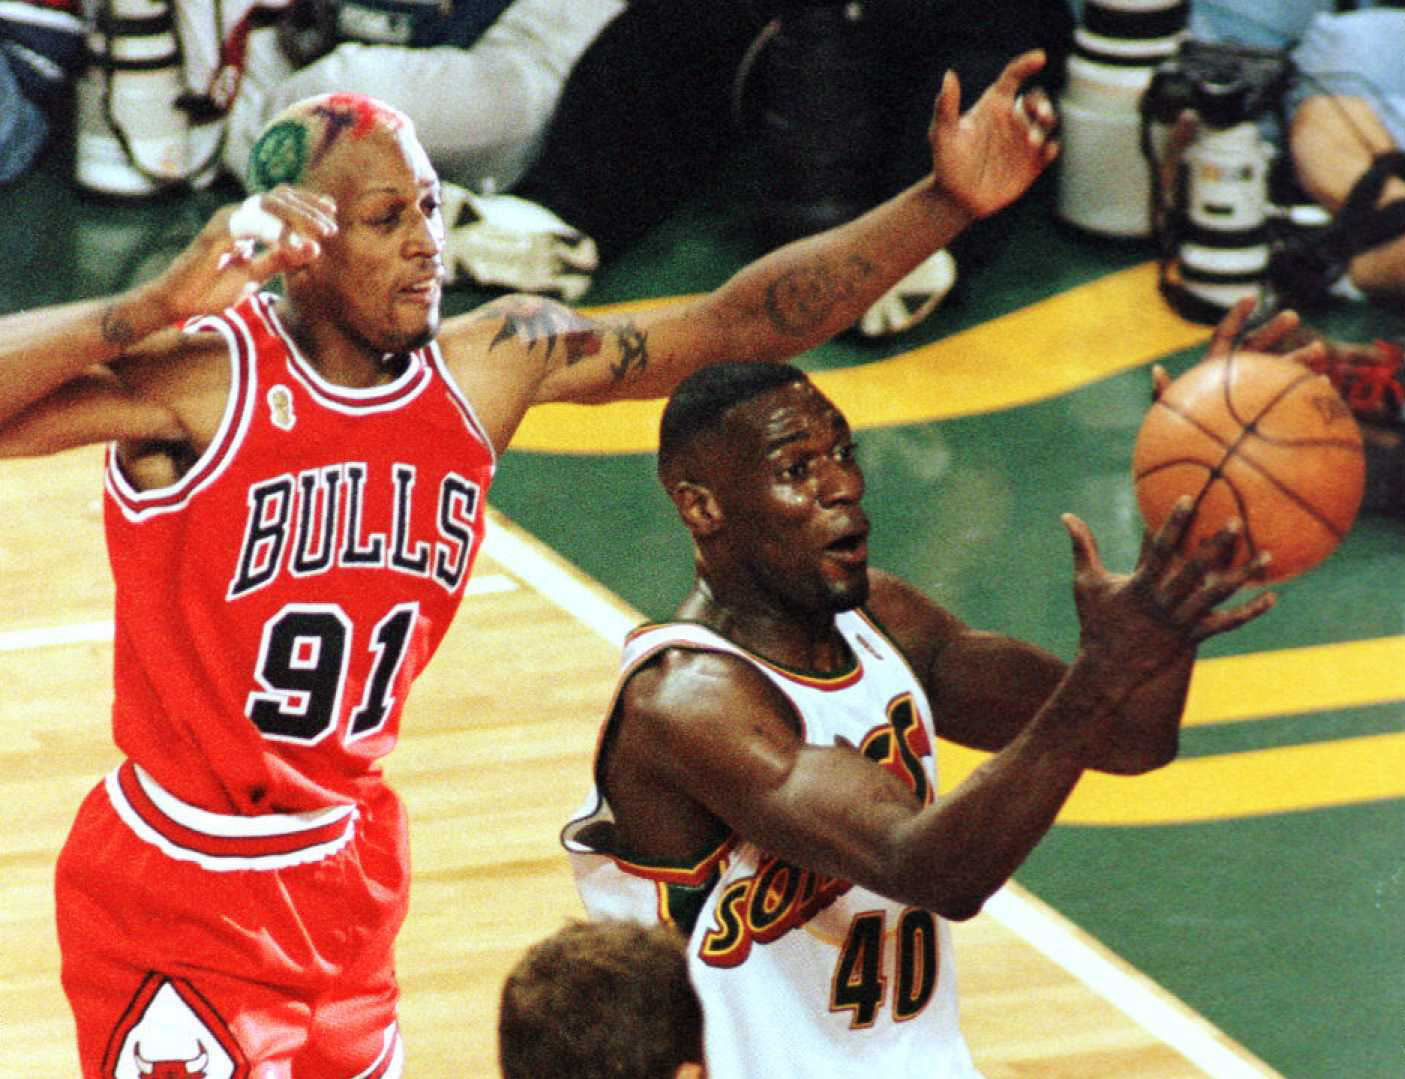 All-Star big man Shawn Kemp thrived with the Seattle SuperSonics for nearly a decade. Kemp just opened up about why he left the Sonics in 1997.